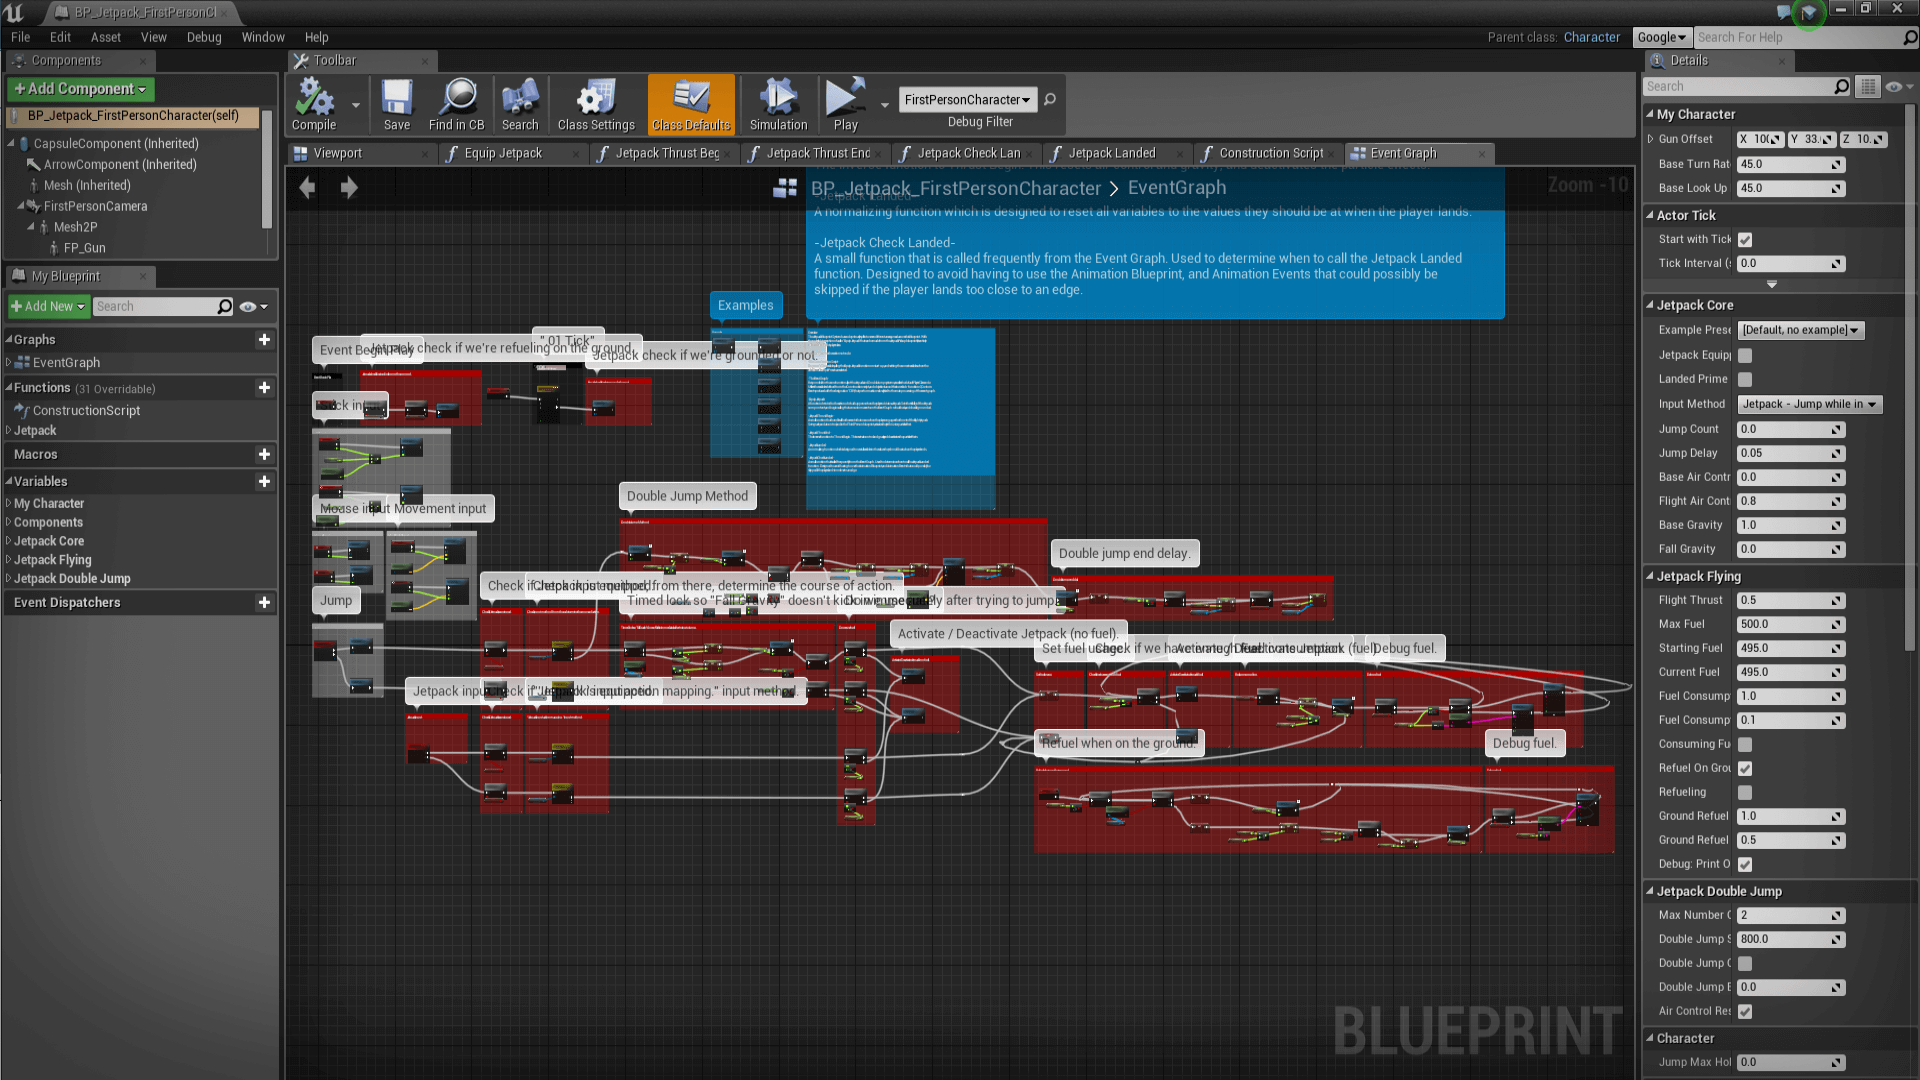 Jetpack blueprint system update 11 by team metazord in share malvernweather Gallery